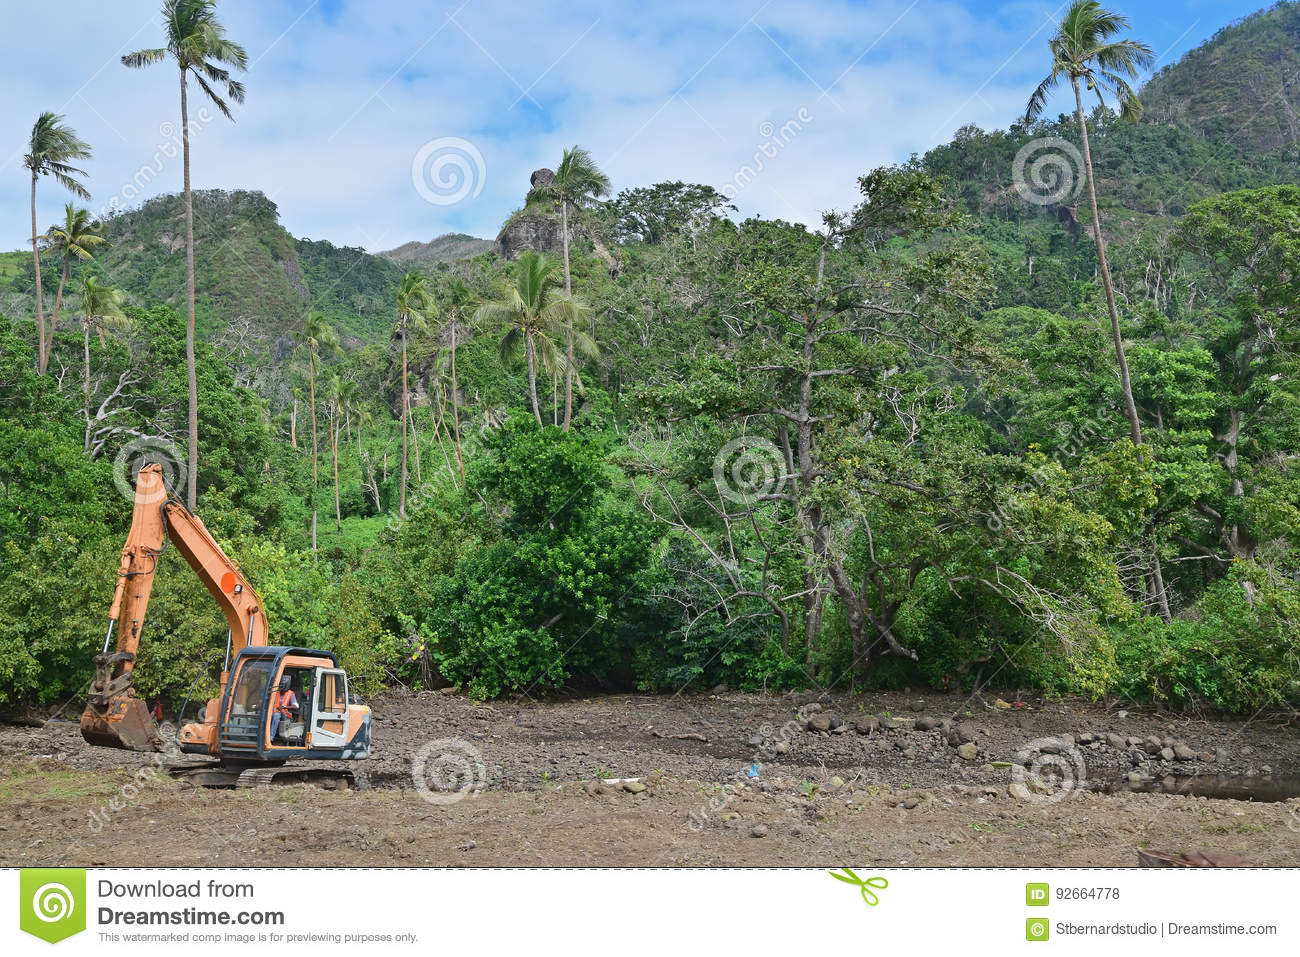 Forest clearance or being logged down due to development in tropical third world country